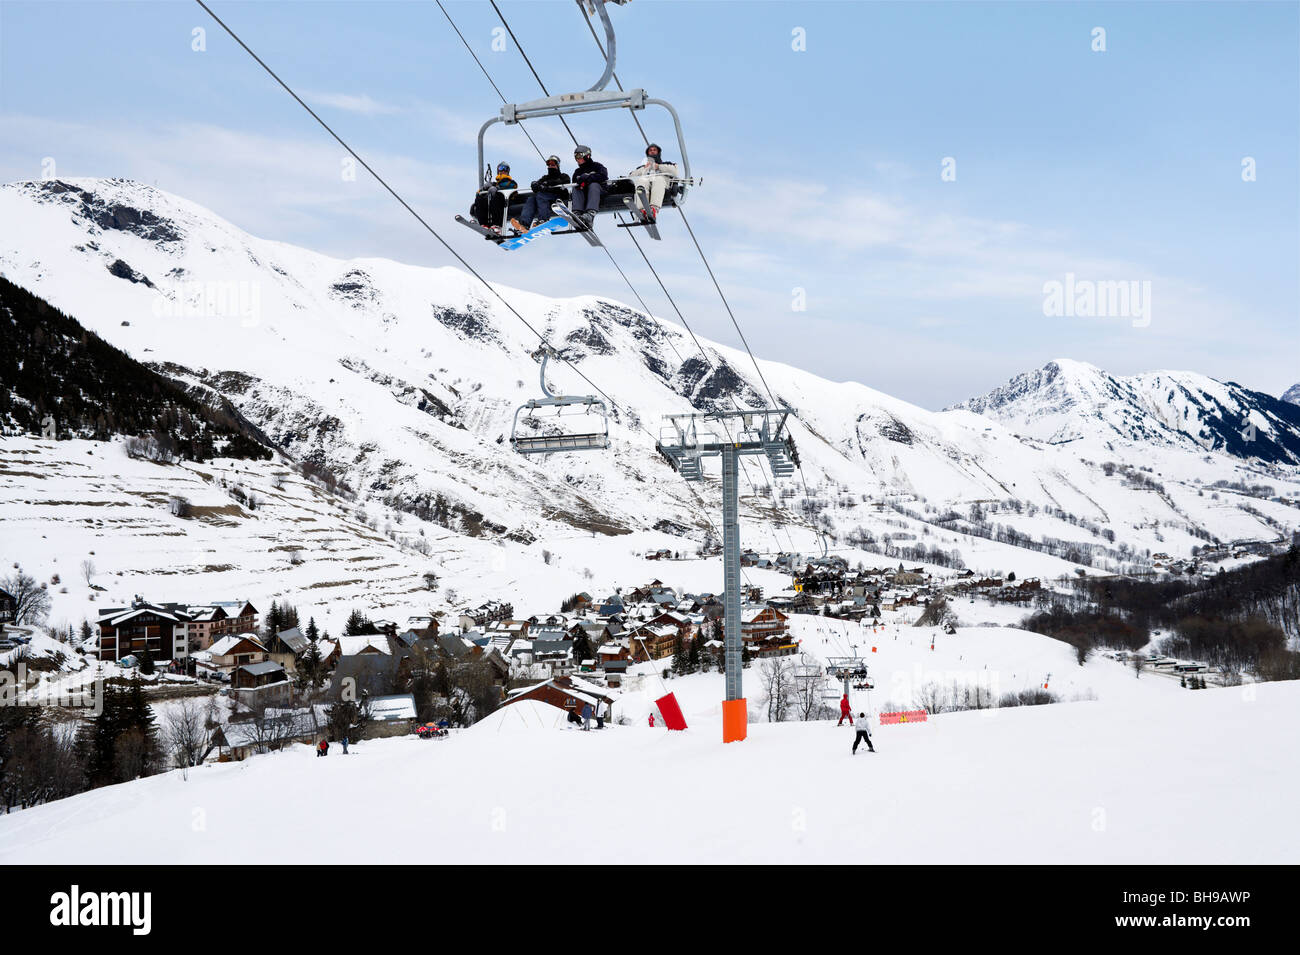 view from the slopes over the resort of st sorlin d'arves, les stock